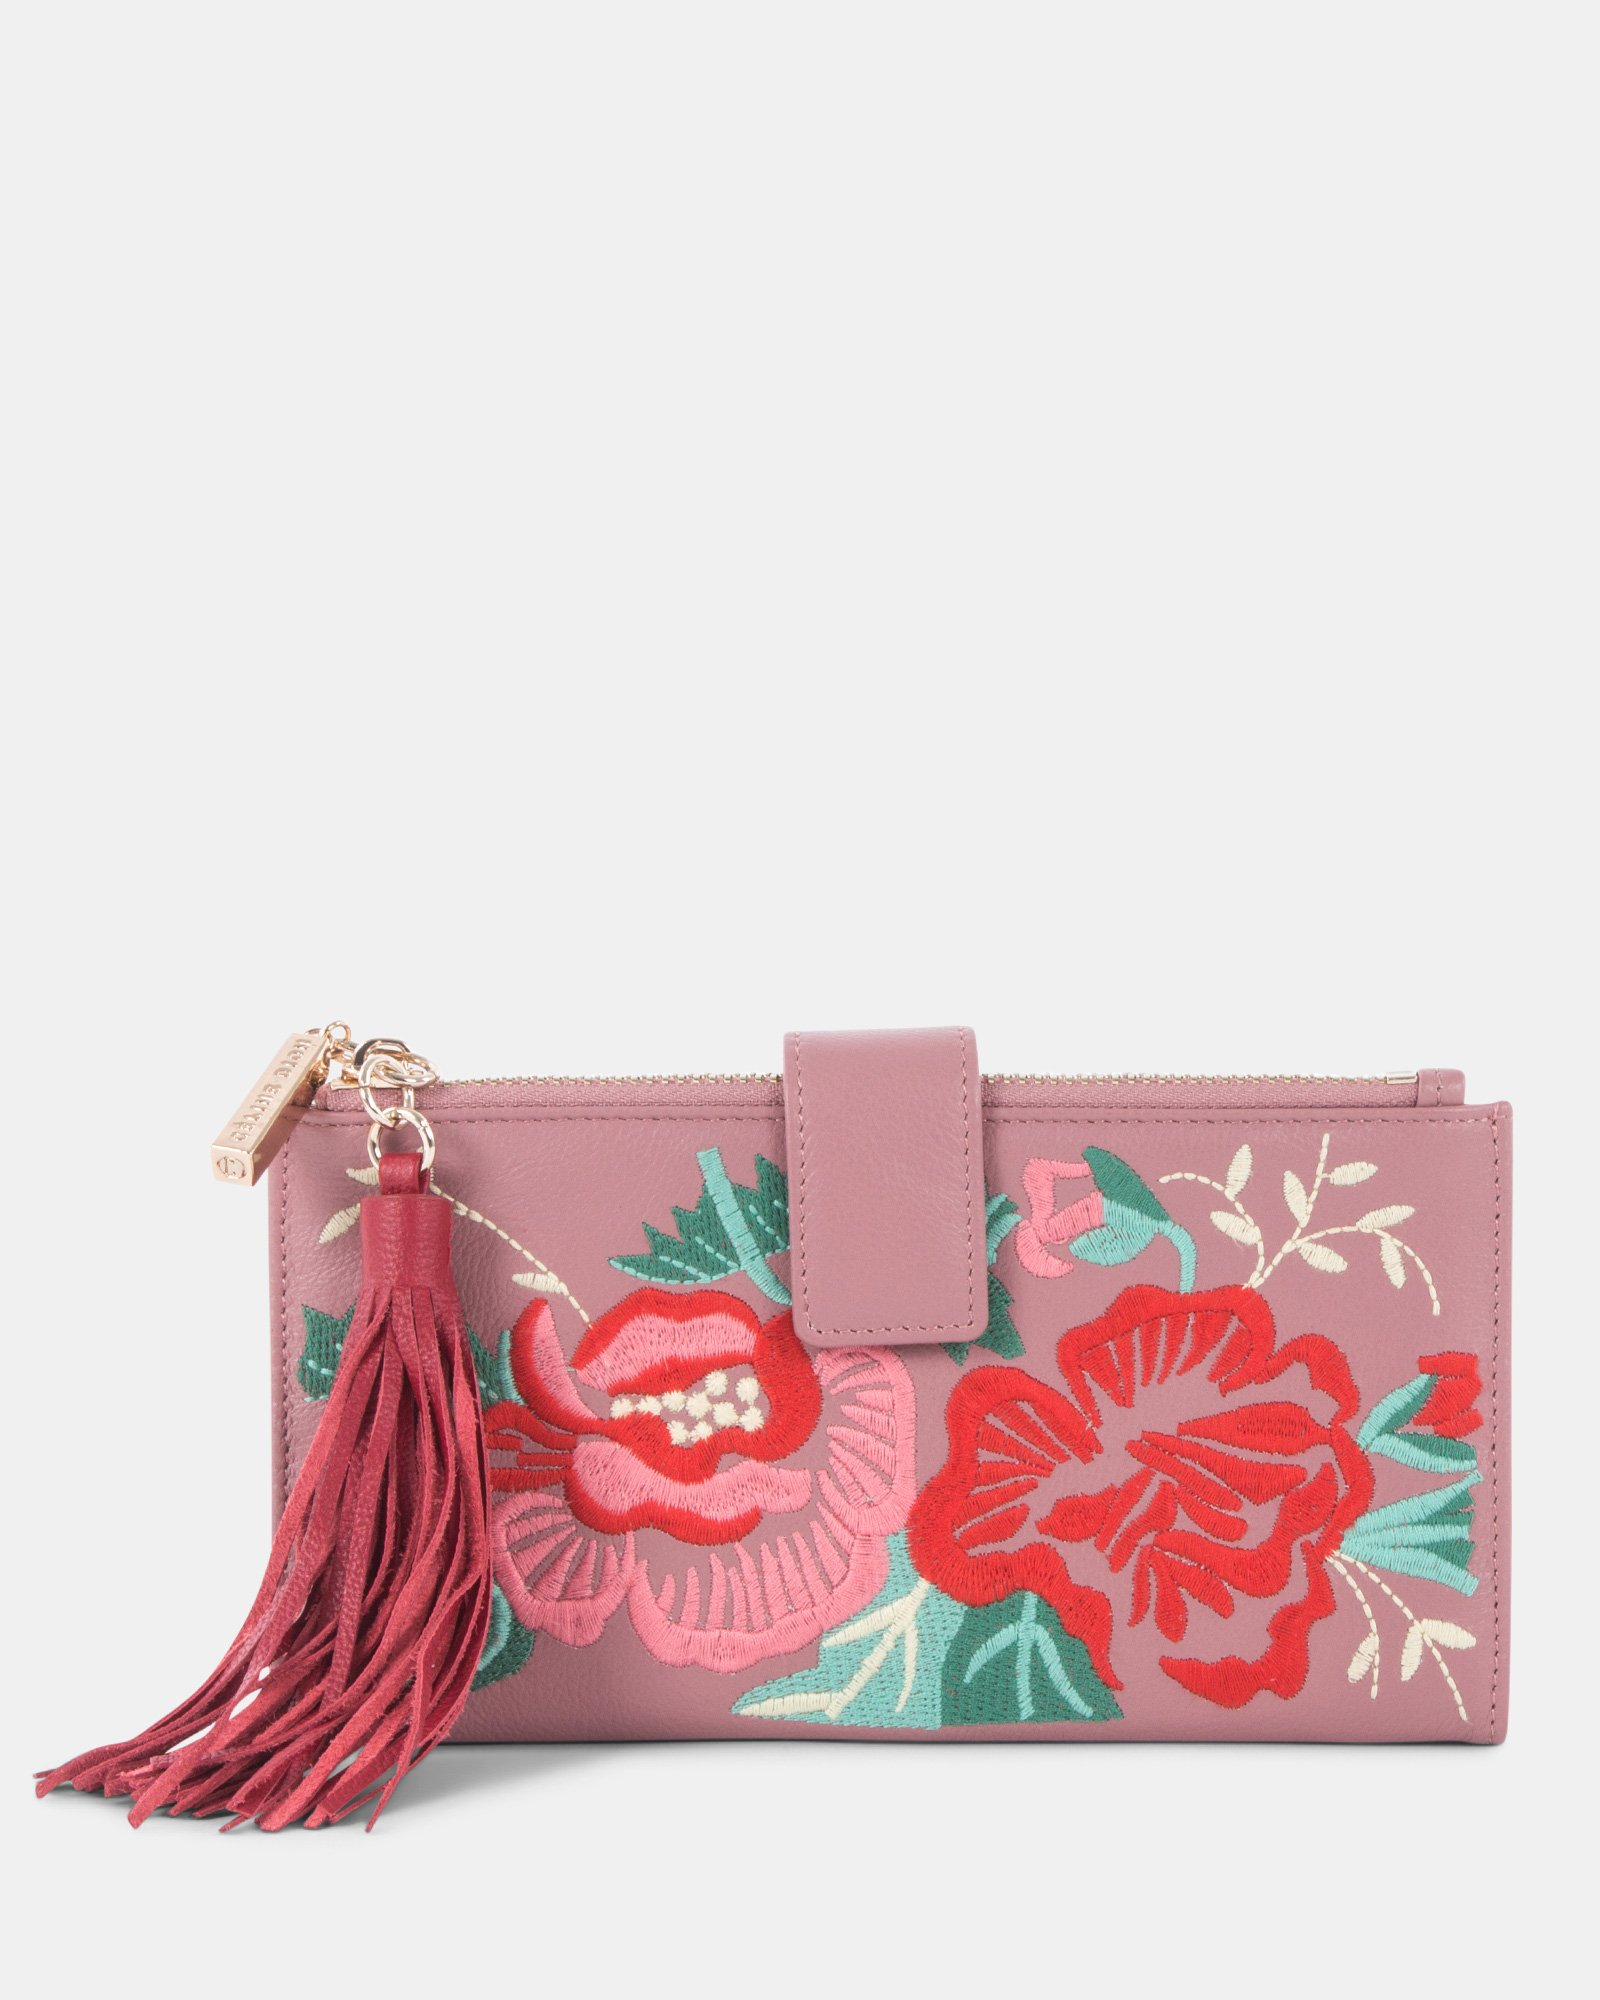 Harmonic - Soft leather with embroidery Wallet - Pink - Céline Dion - Zoom